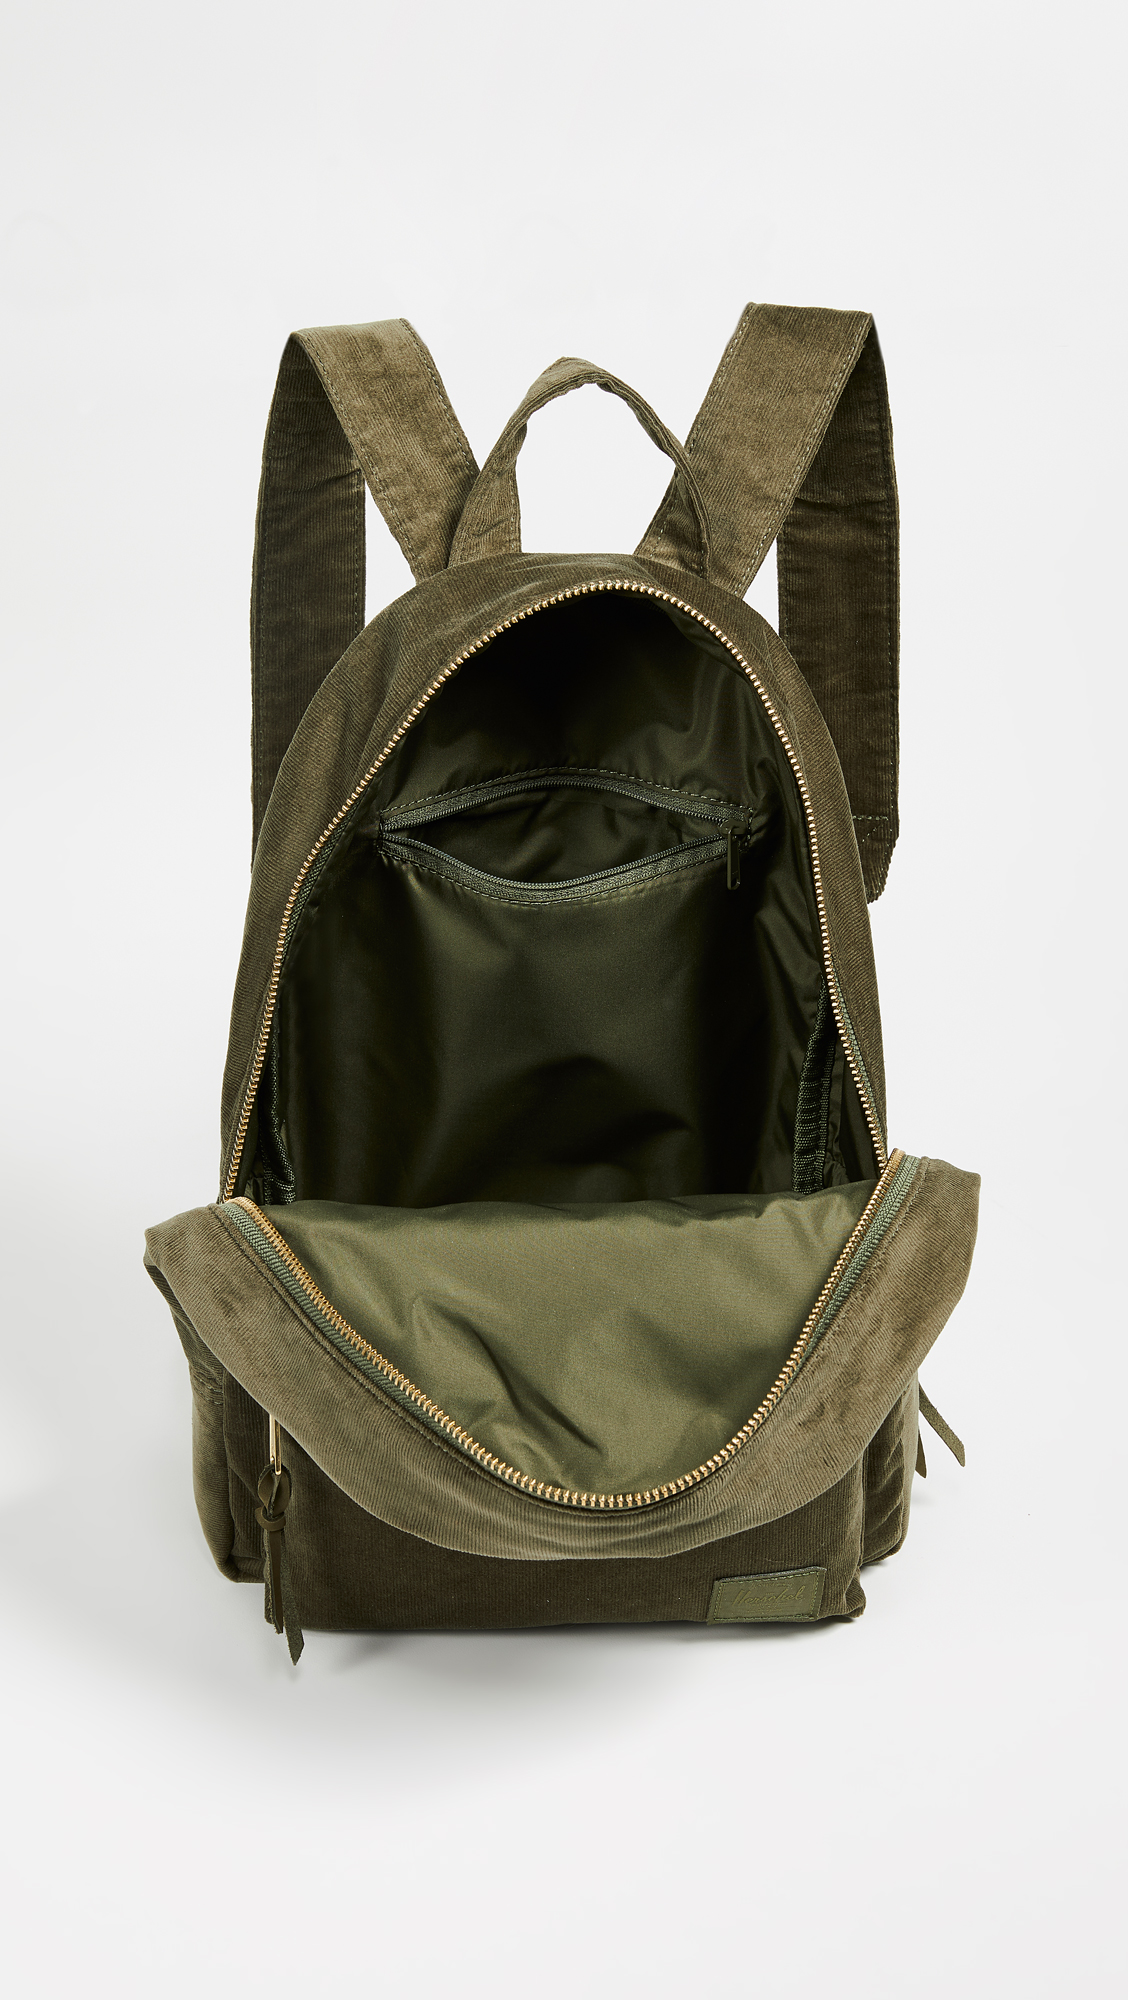 8437c4d68c2 Herschel Supply Co. Grove X Small Corduroy Backpack